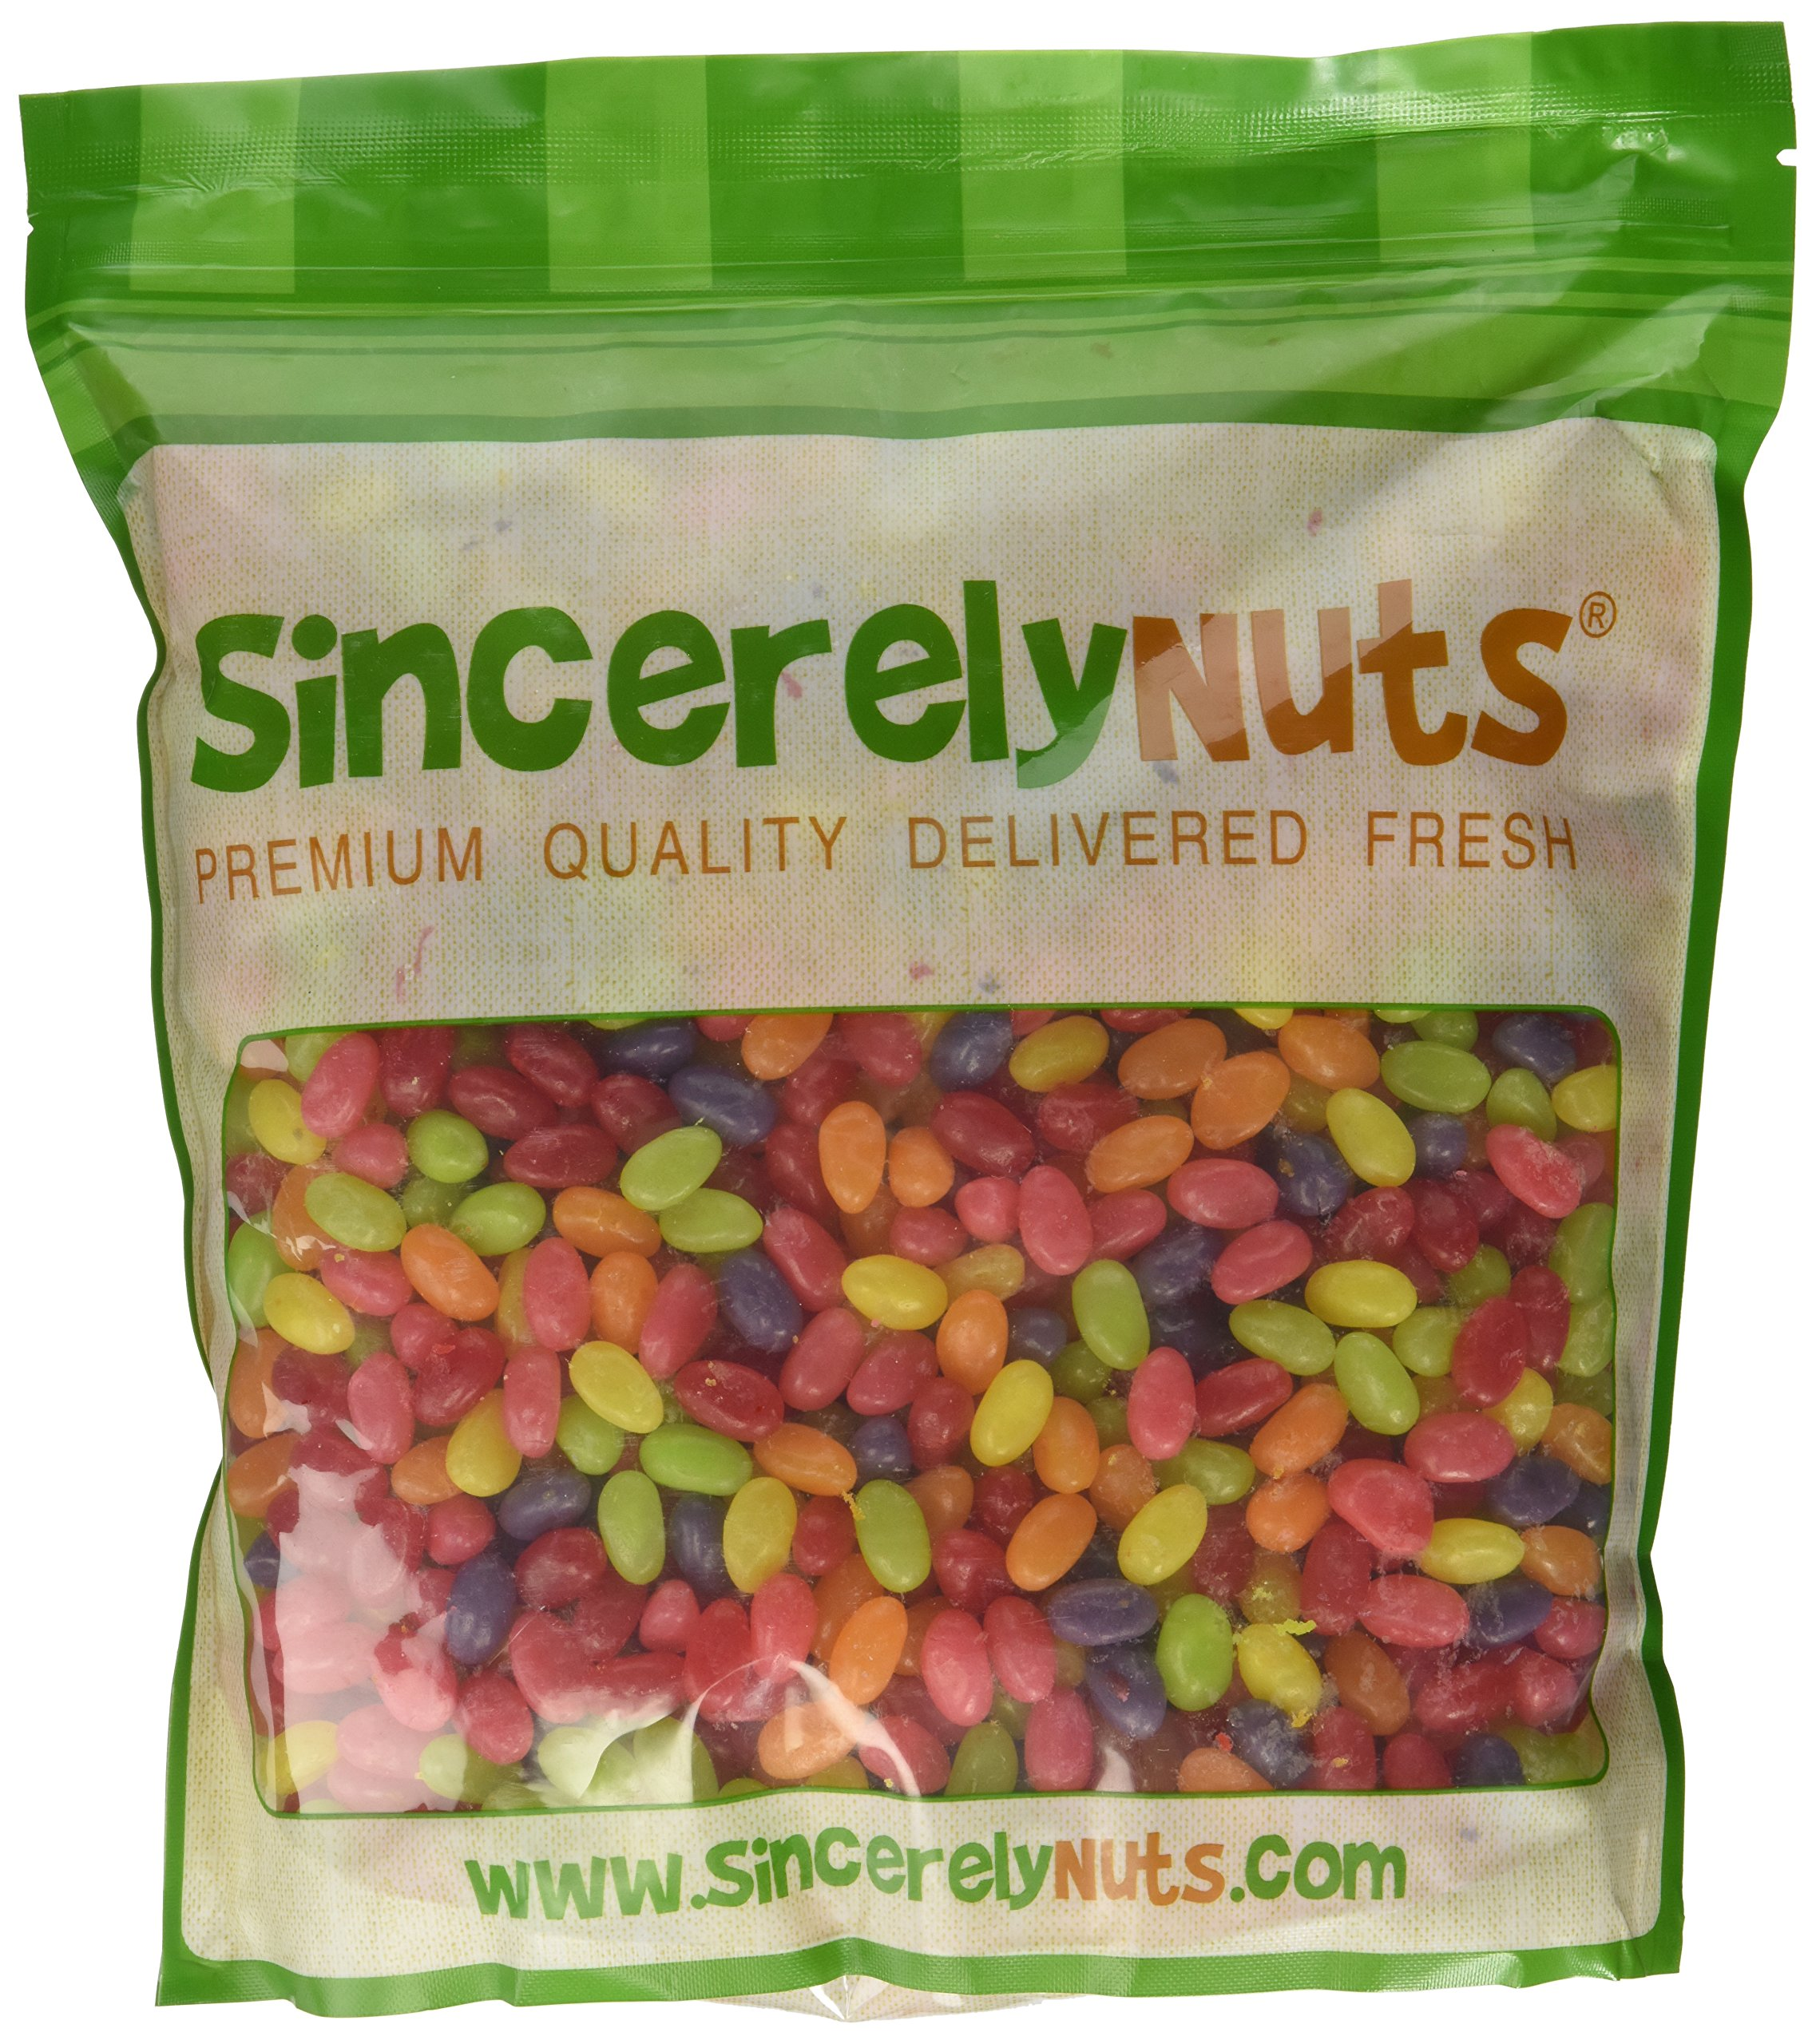 Teenee Beanee Jelly Beans Americana Medley Mix - 5lb Bag by Just Born (Image #1)